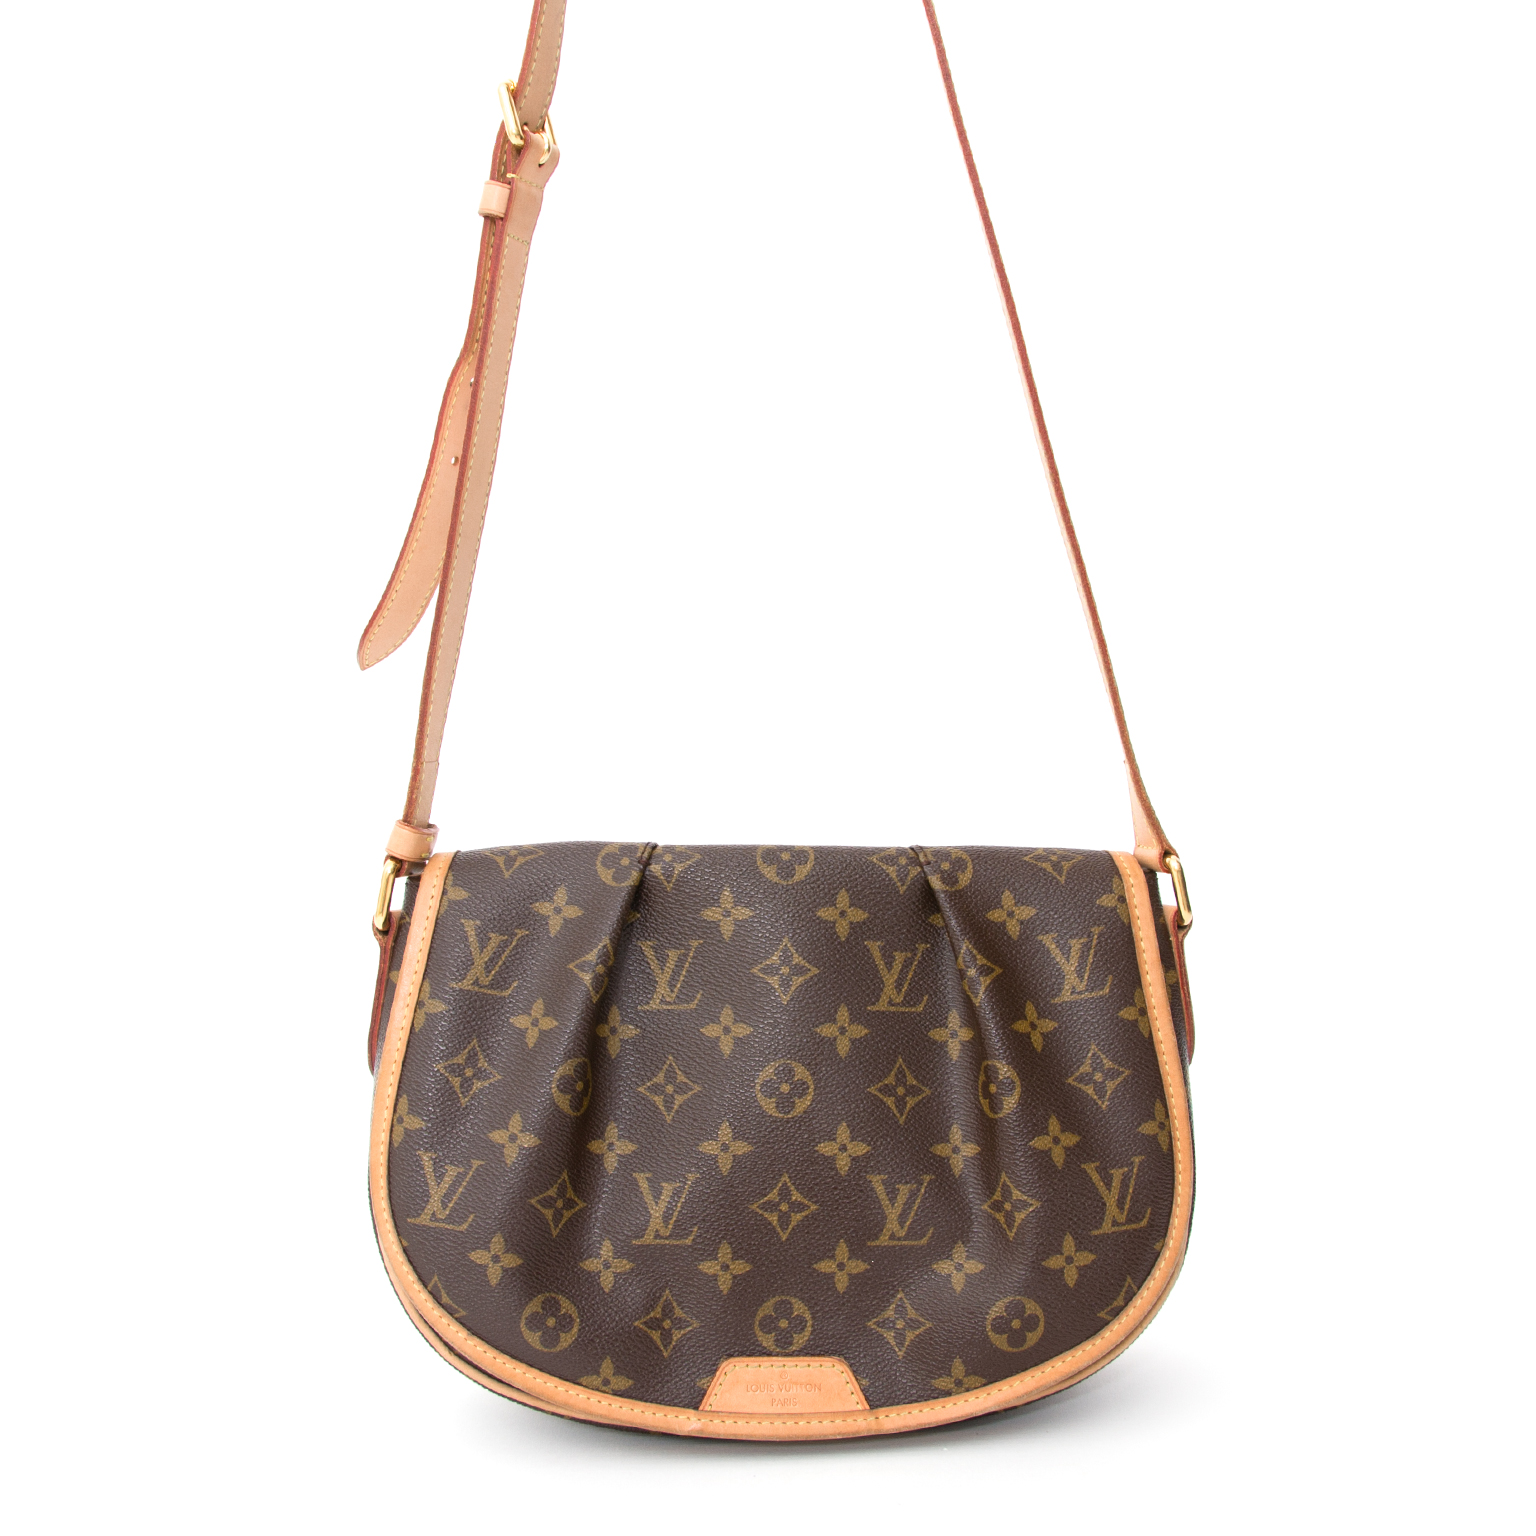 2709f8909c34 Louis Vuitton Menilmontant PM shoulder bag that can also be worn crossbody.  This bag is